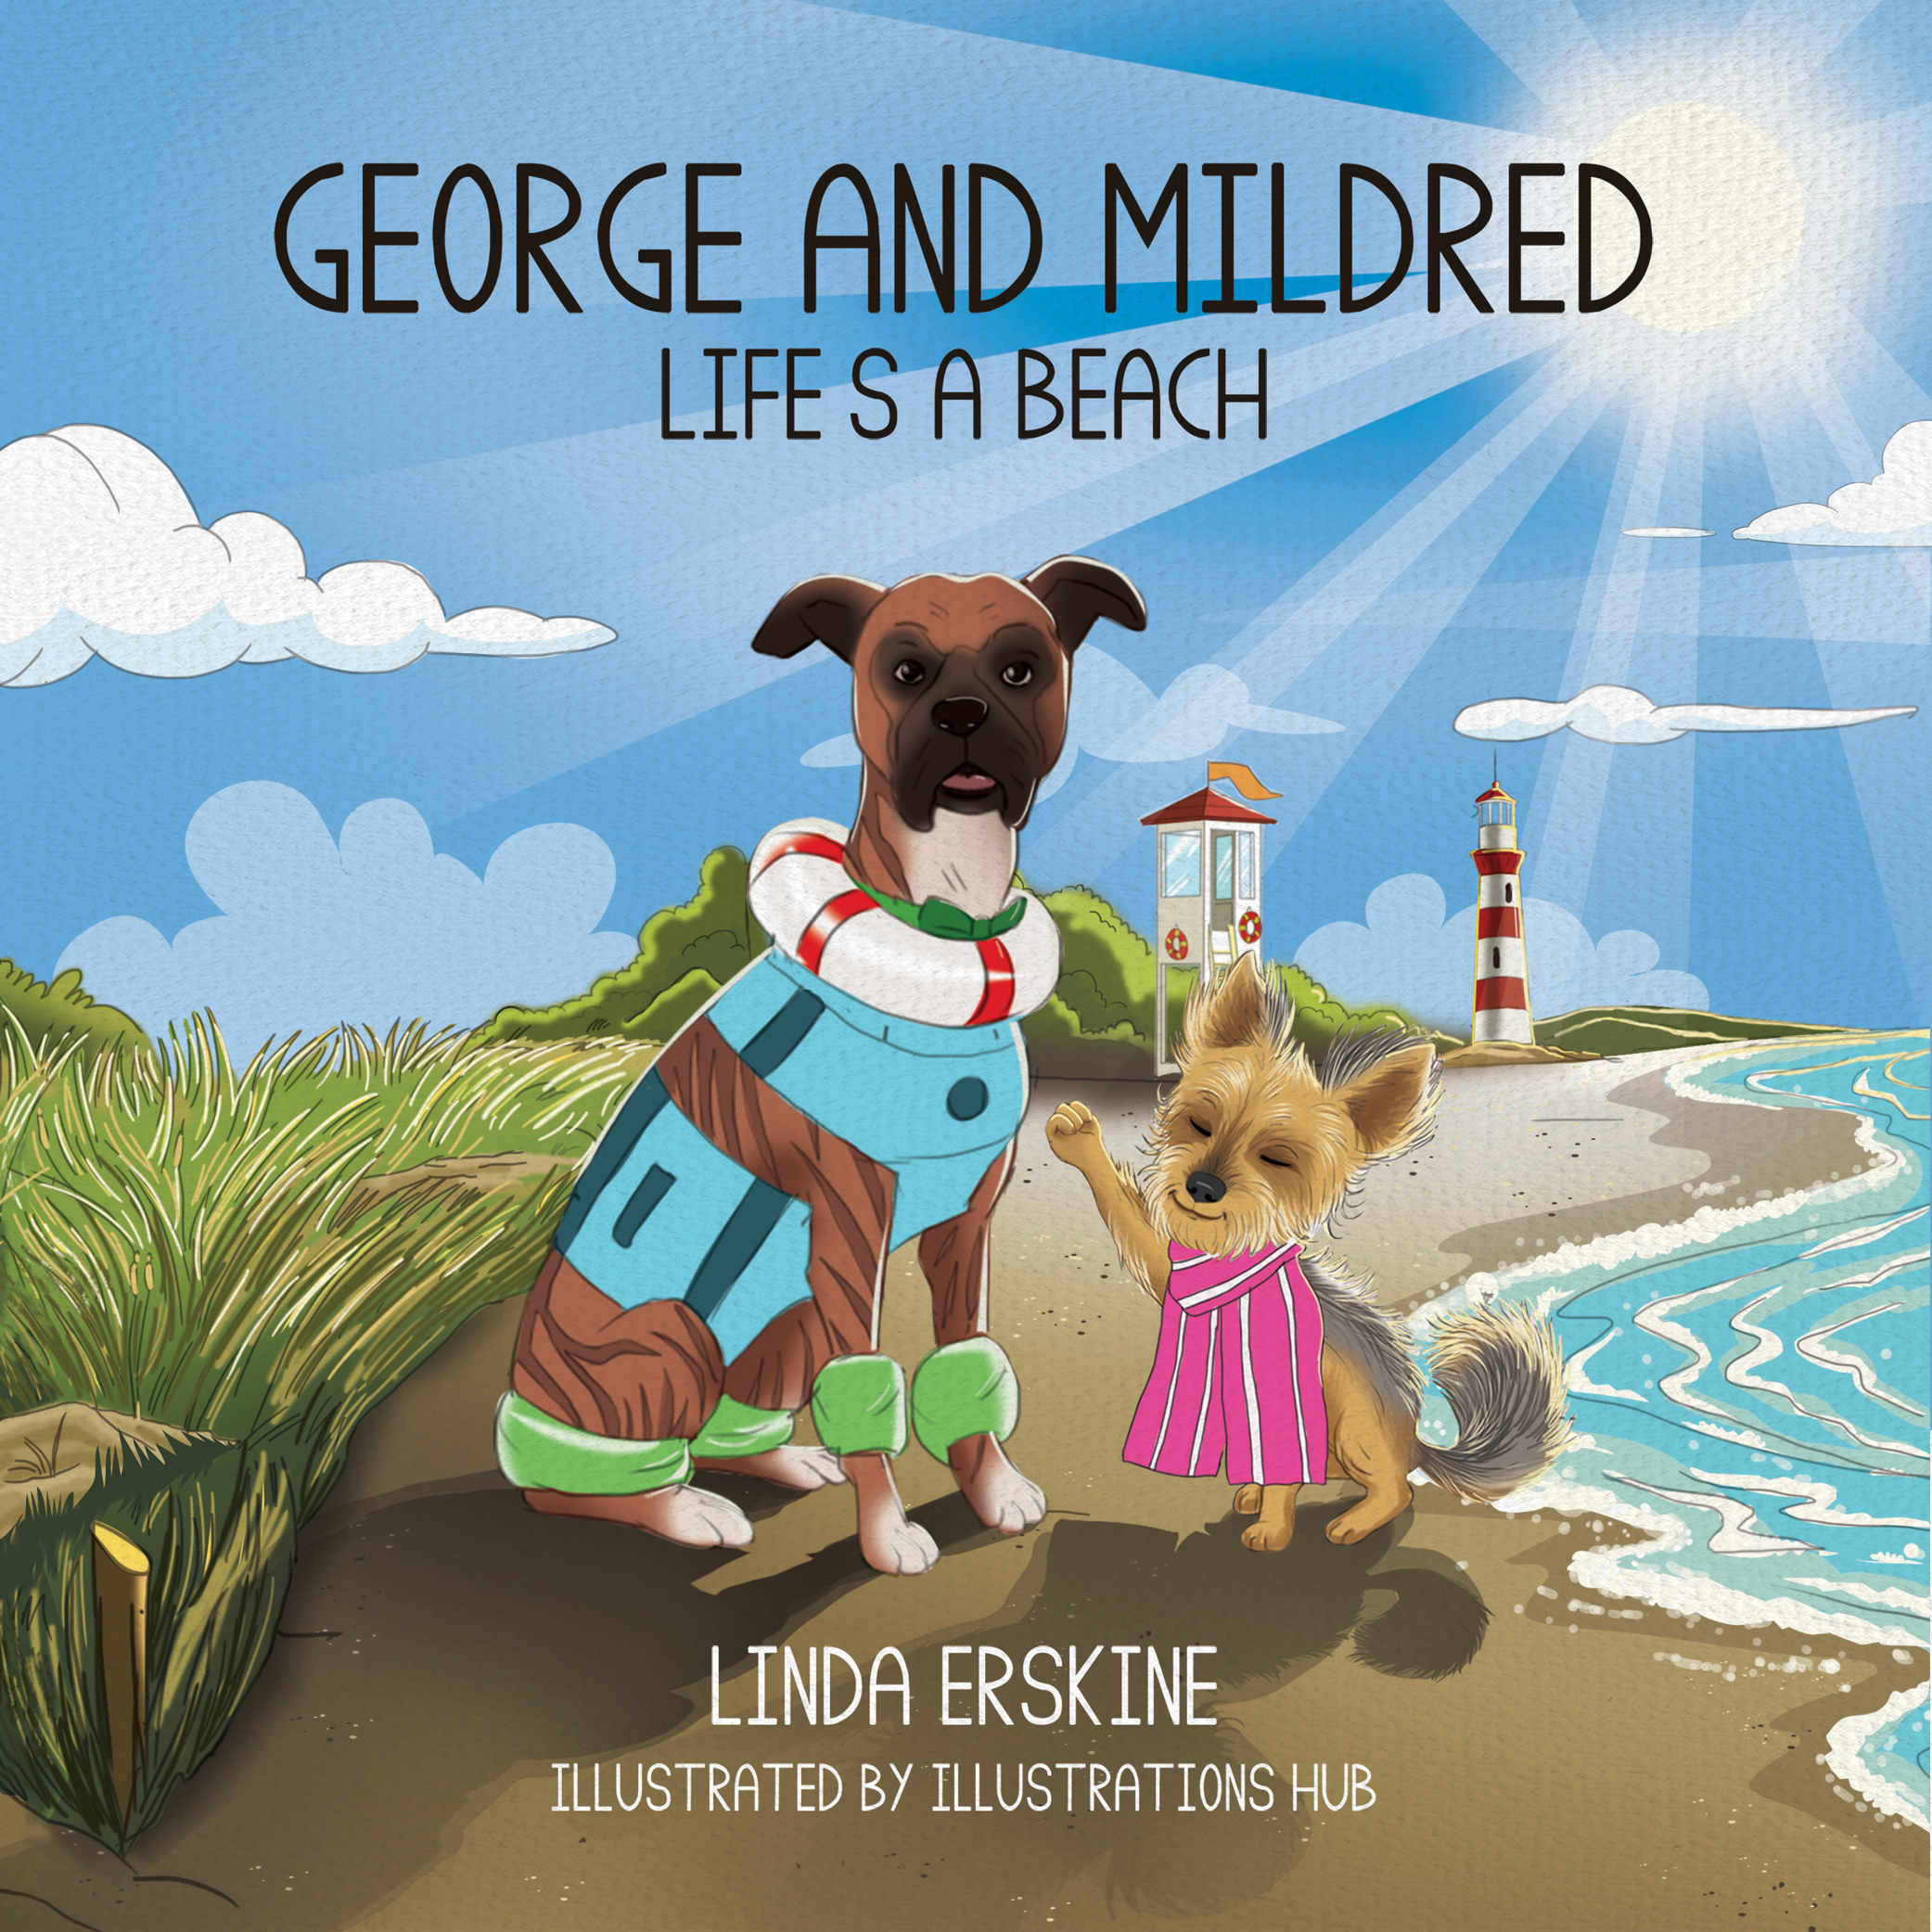 George And Mildred - Life's A Beach